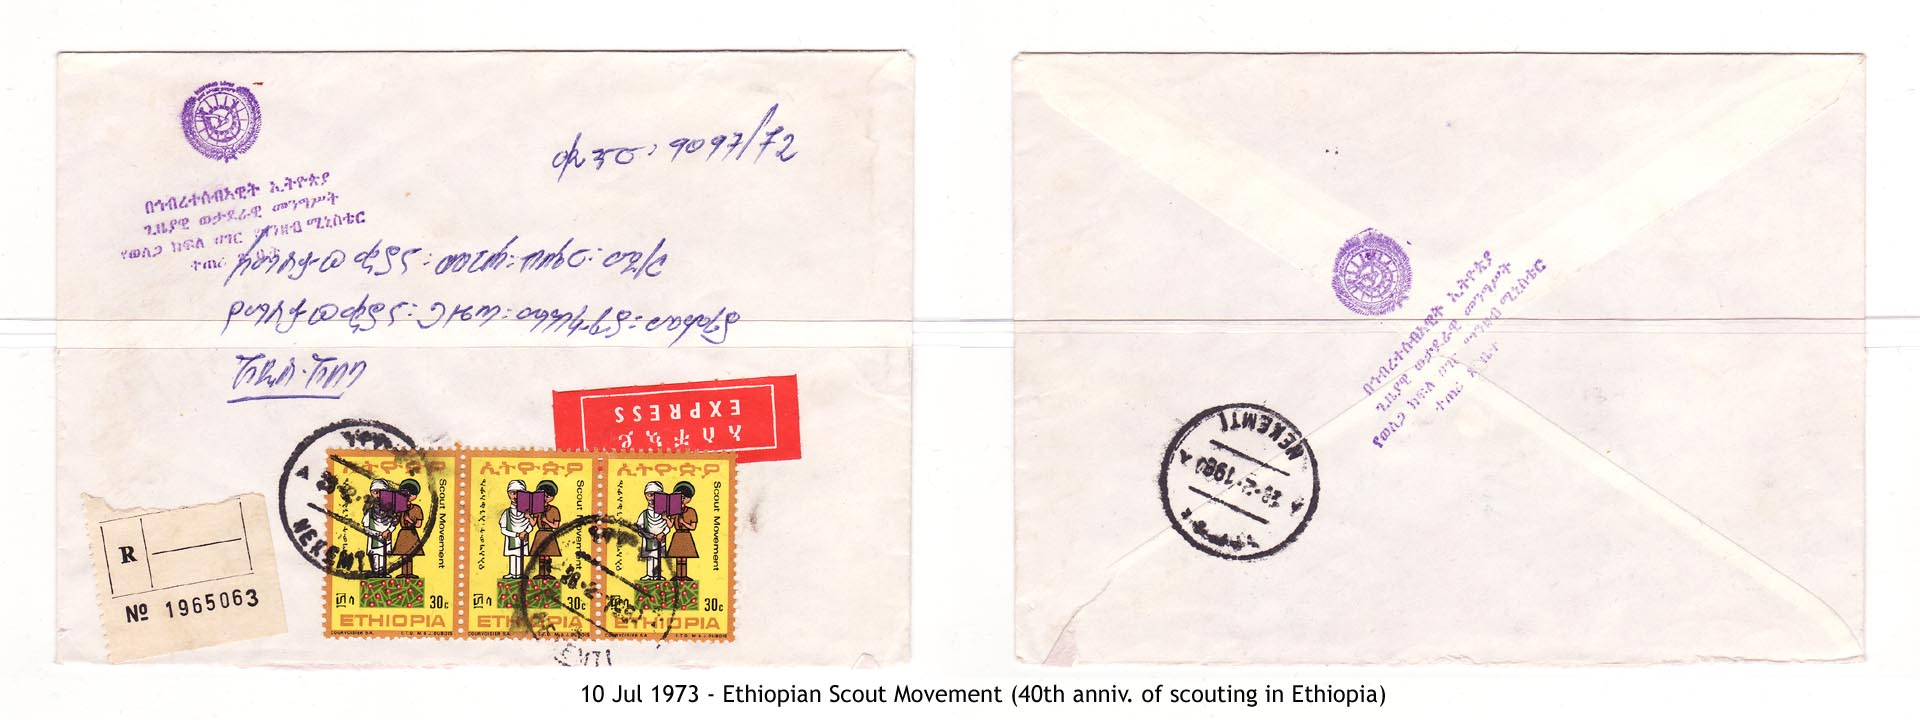 19730710 - Ethiopian Scout Movement (40th anniv. of scouting in Ethiopia)